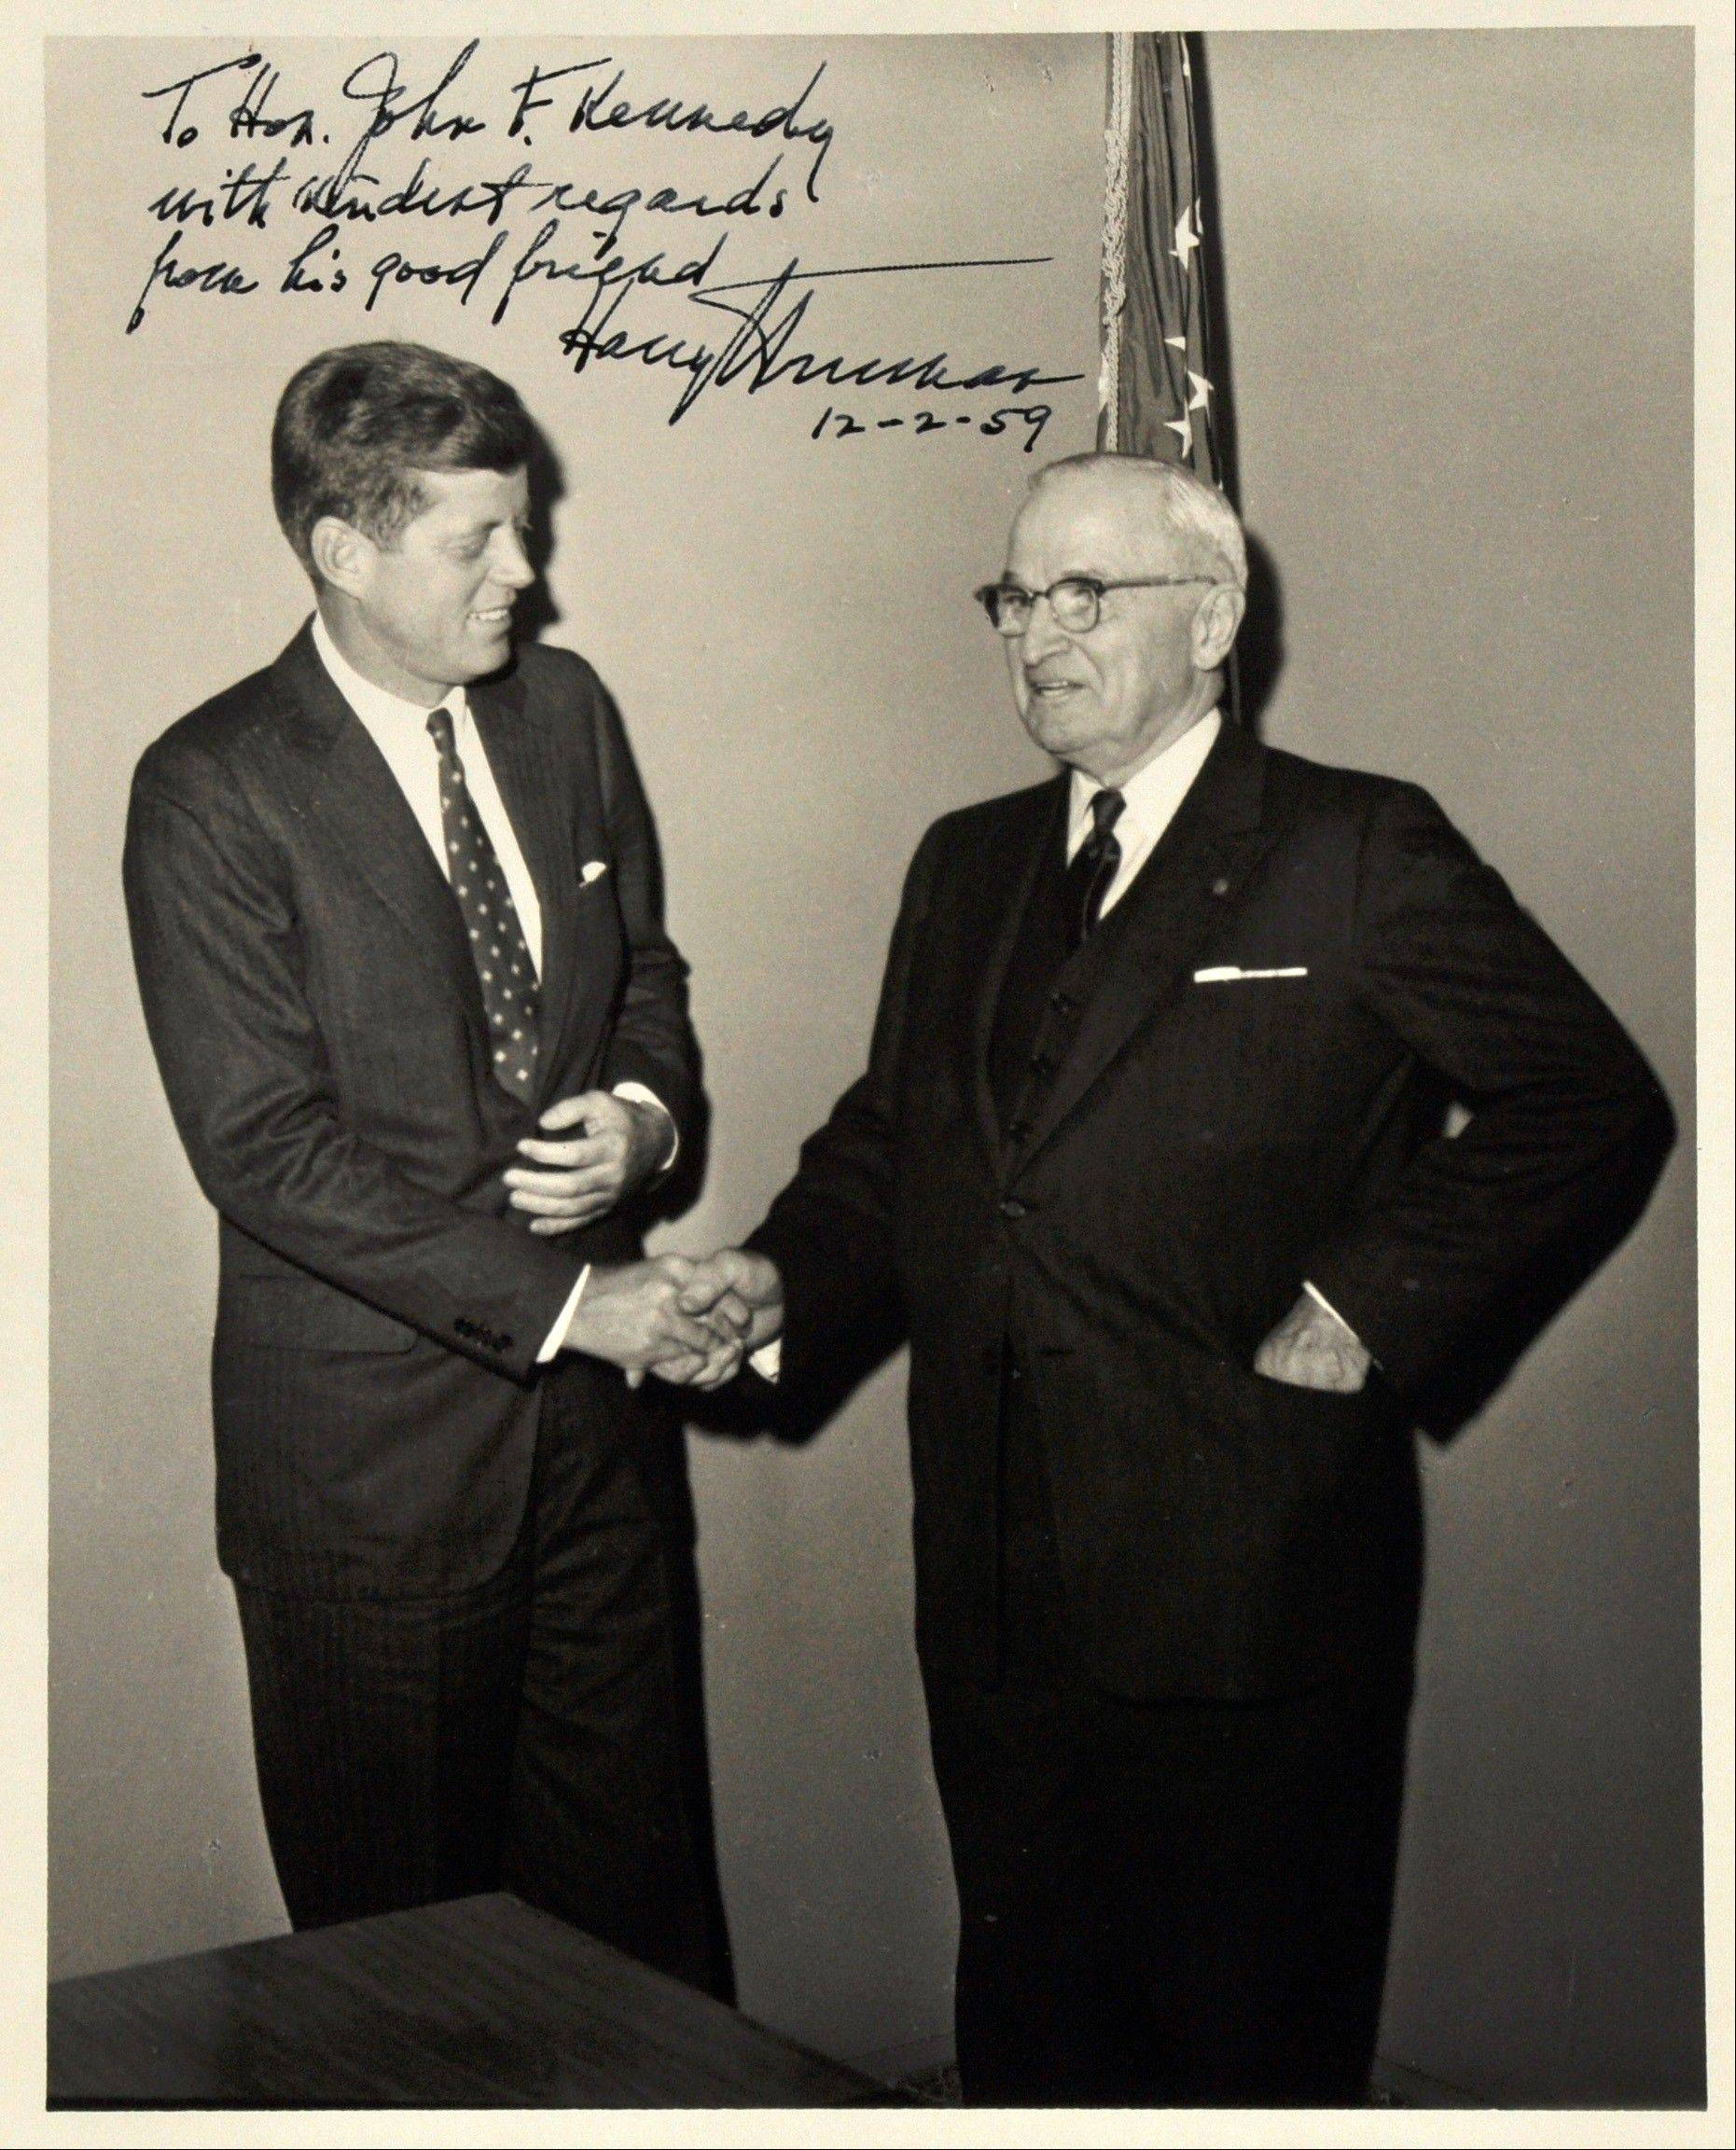 Presidents John F. Kennedy and Harry Truman.